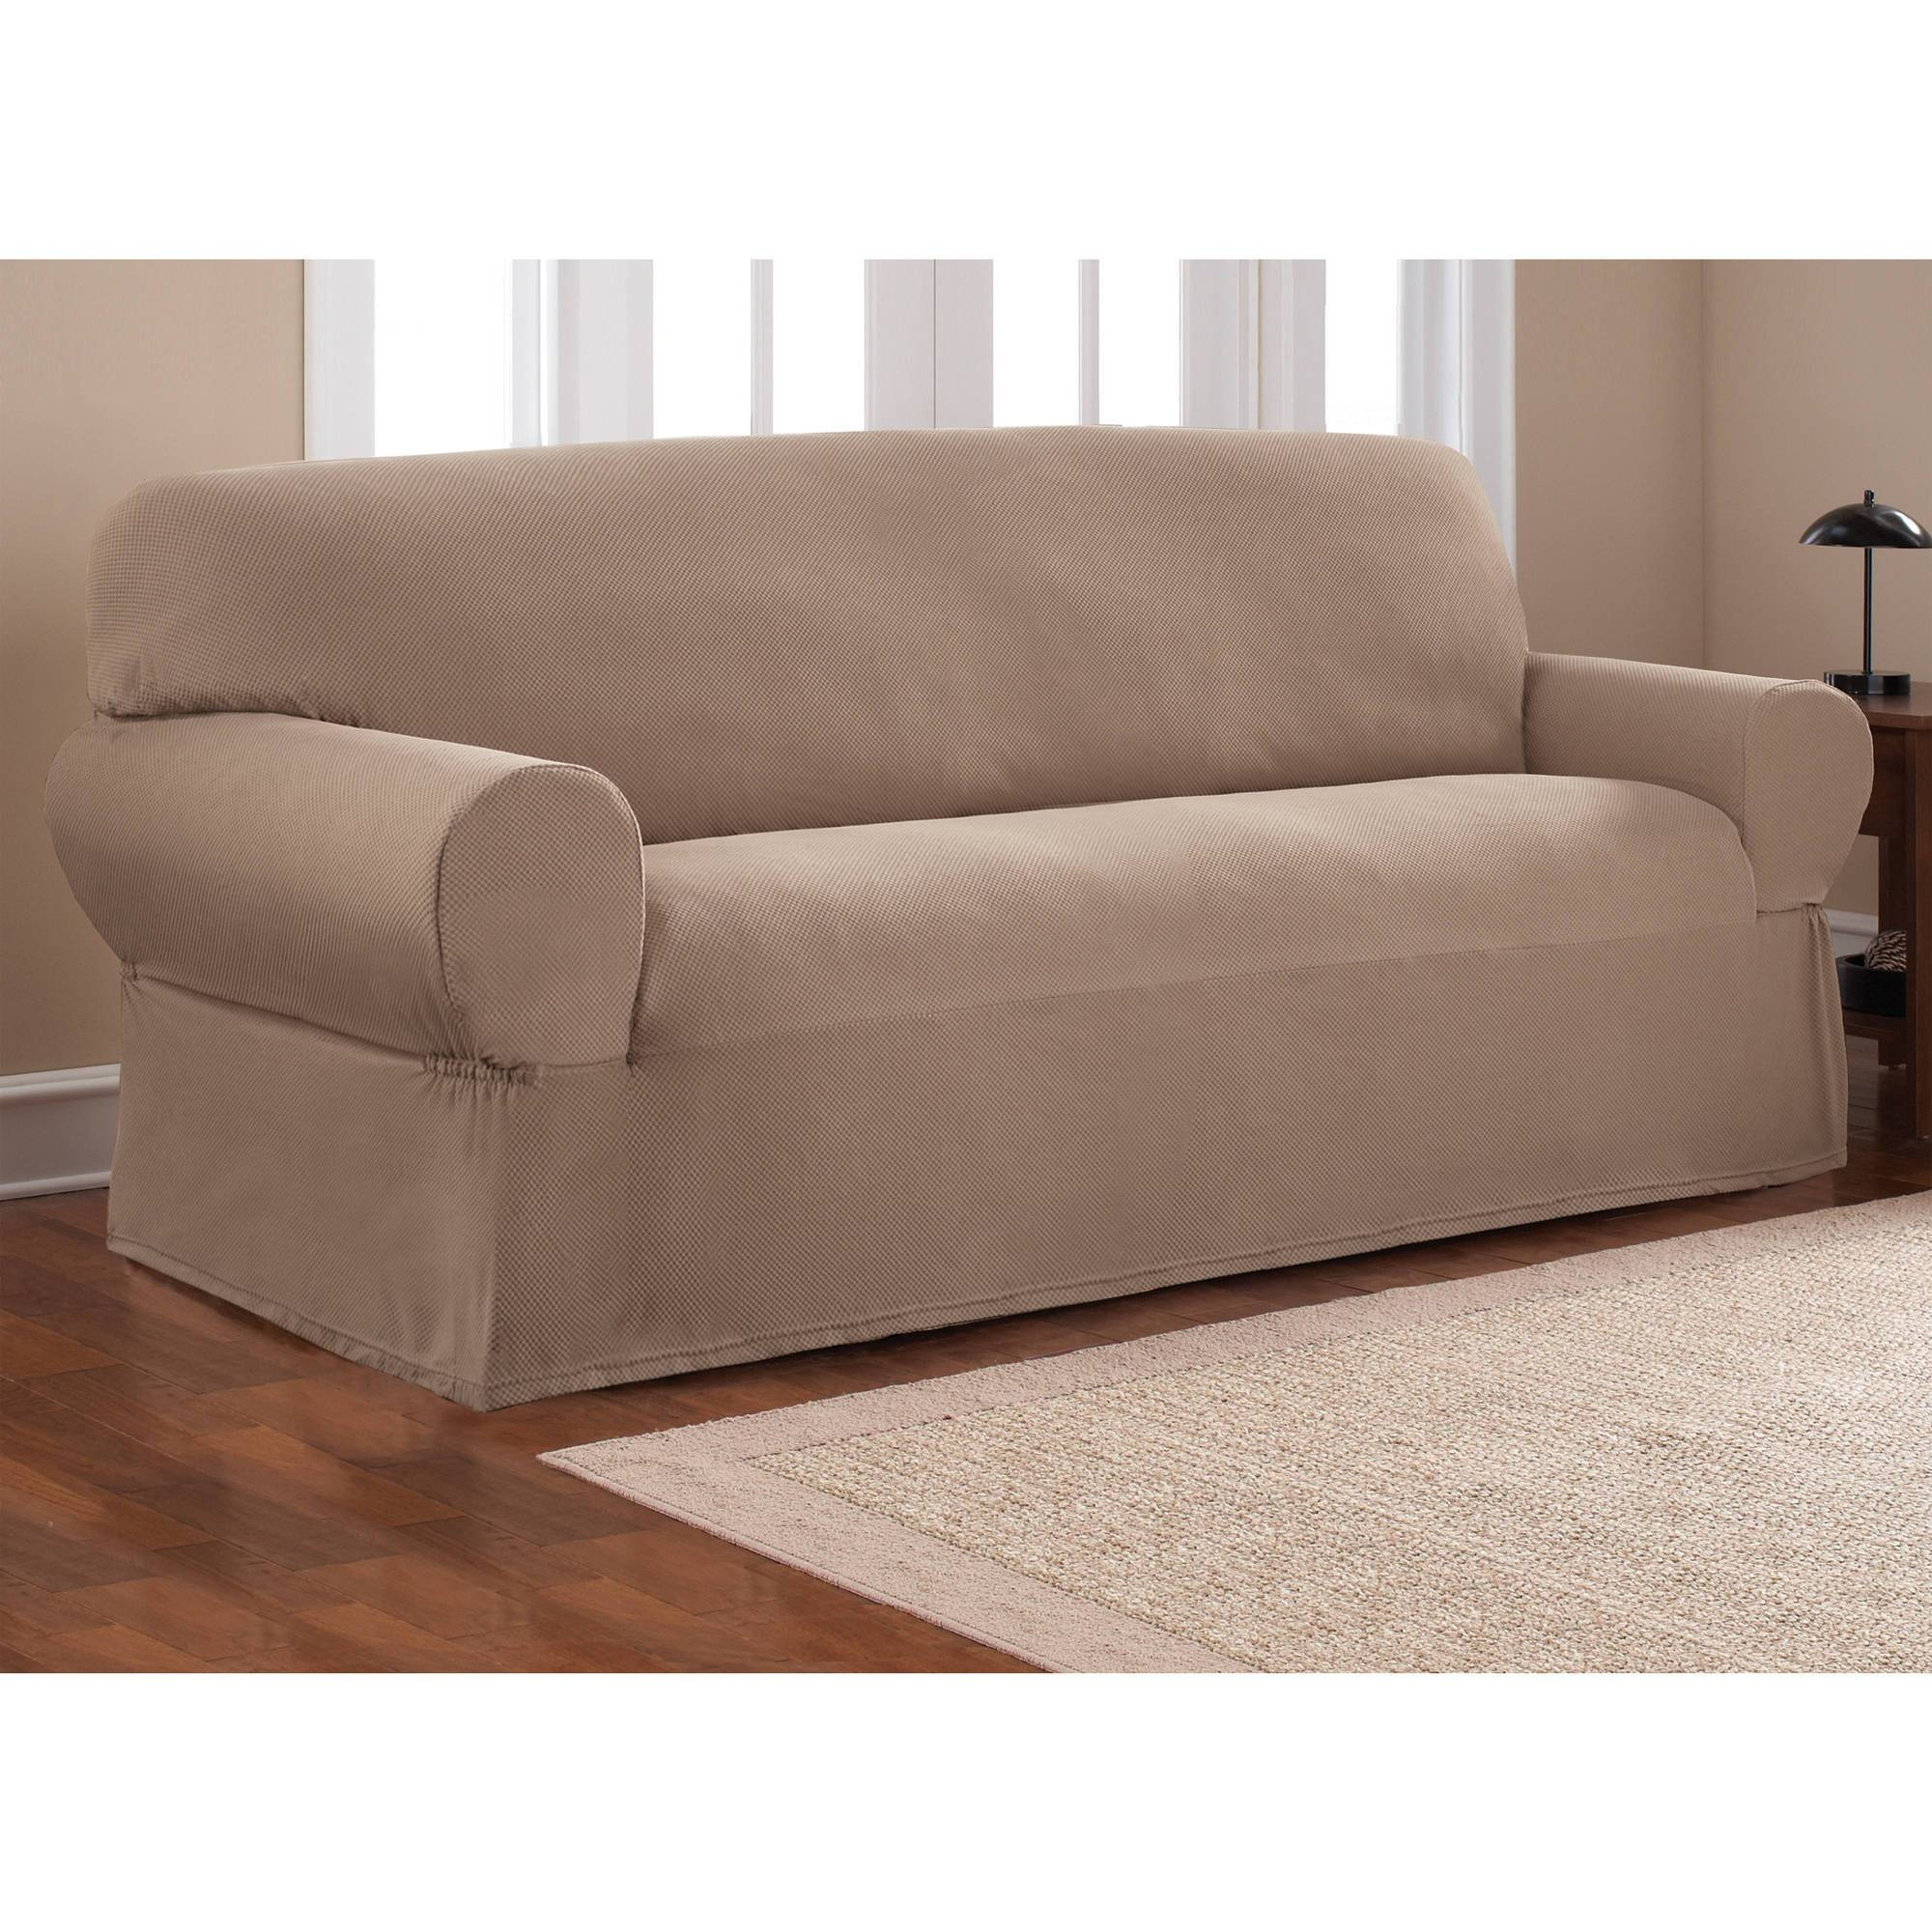 Furniture: Couch Covers At Walmart To Make Your Furniture Stylish pertaining to Covers for Sofas (Image 10 of 30)